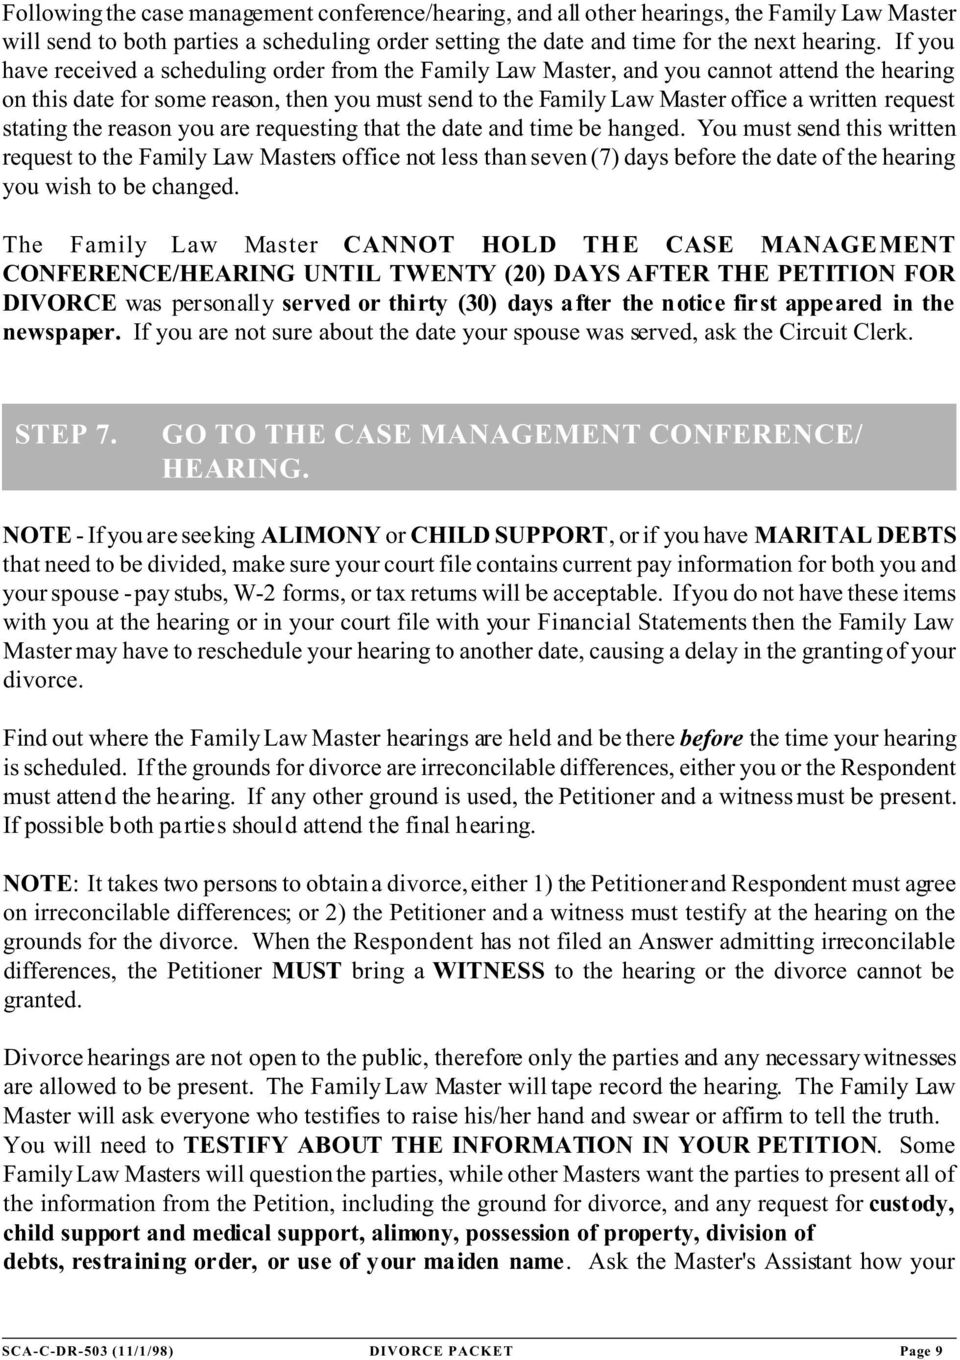 request stating the reason you are requesting that the date and time be hanged.